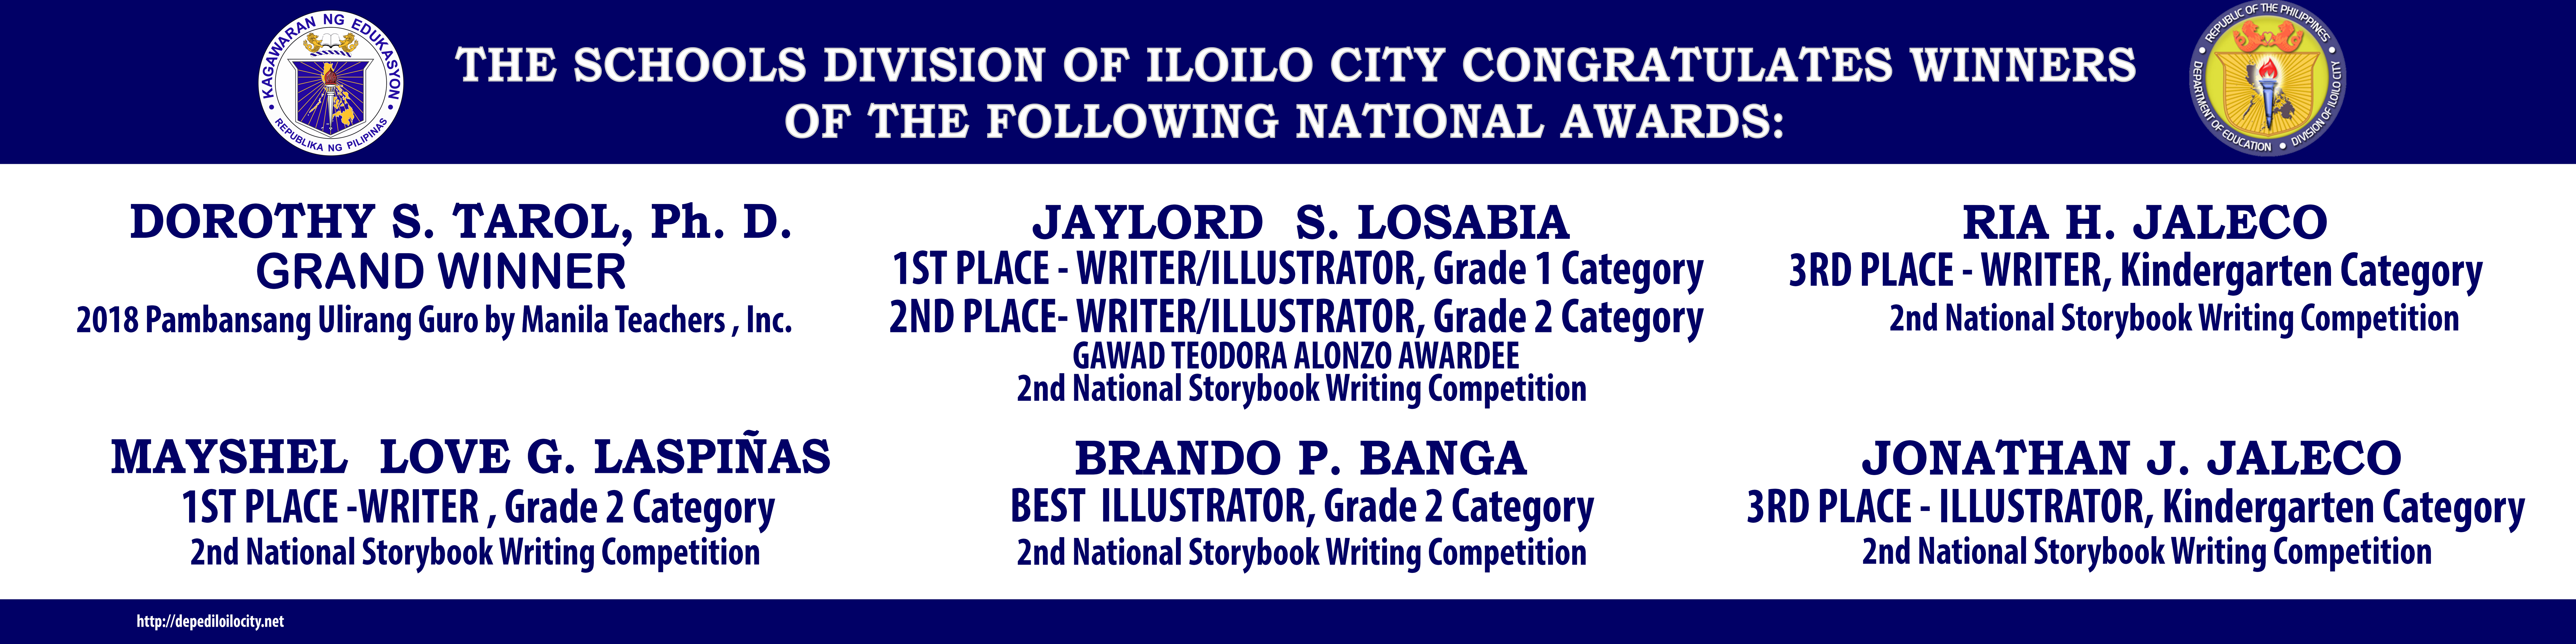 National Storybook Writing Competition